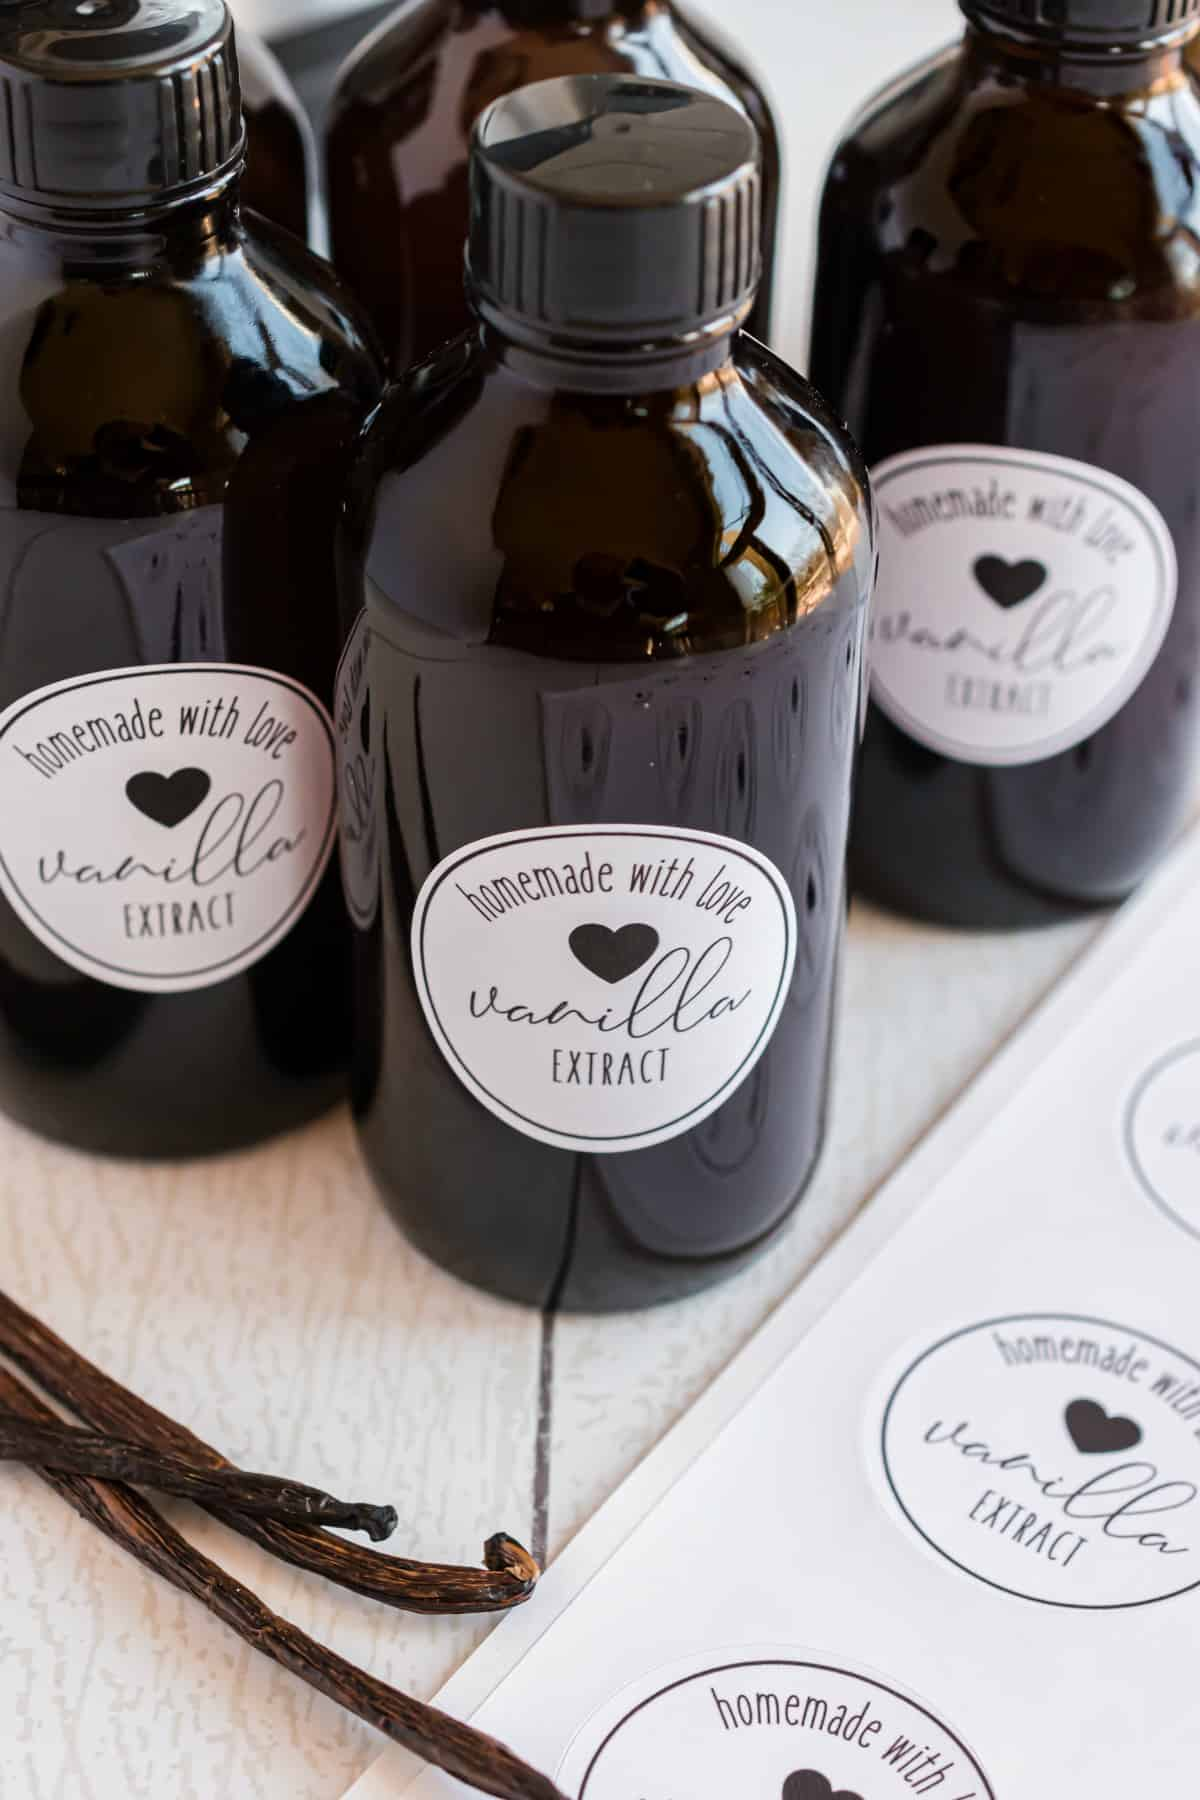 Vanilla extract in small bottles with homemade labels.